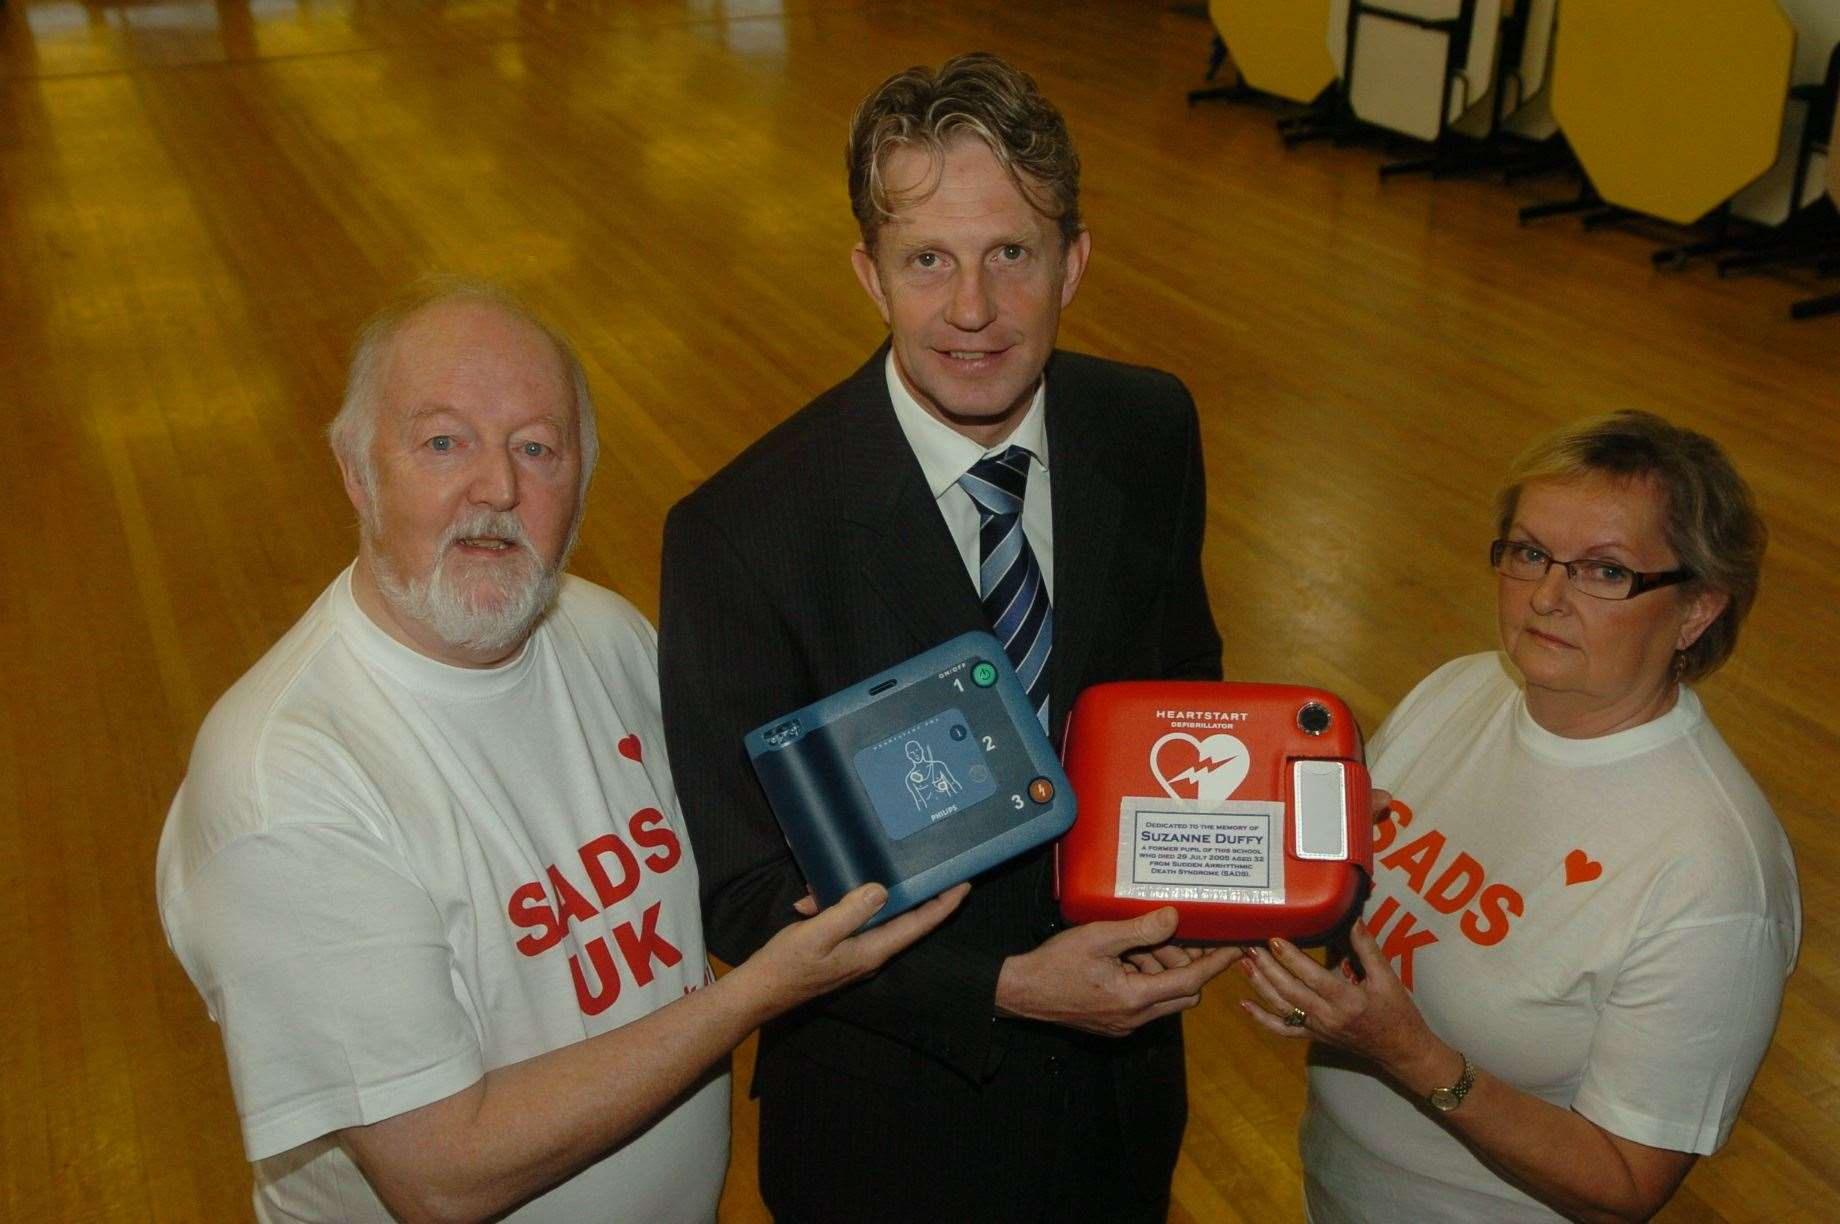 Ian Duffy (left) and wife Evelyn with Maathew Parr-Burman former headteacher of Marshland High School when they presented the school with a defibrillator in memory of Suzanne.